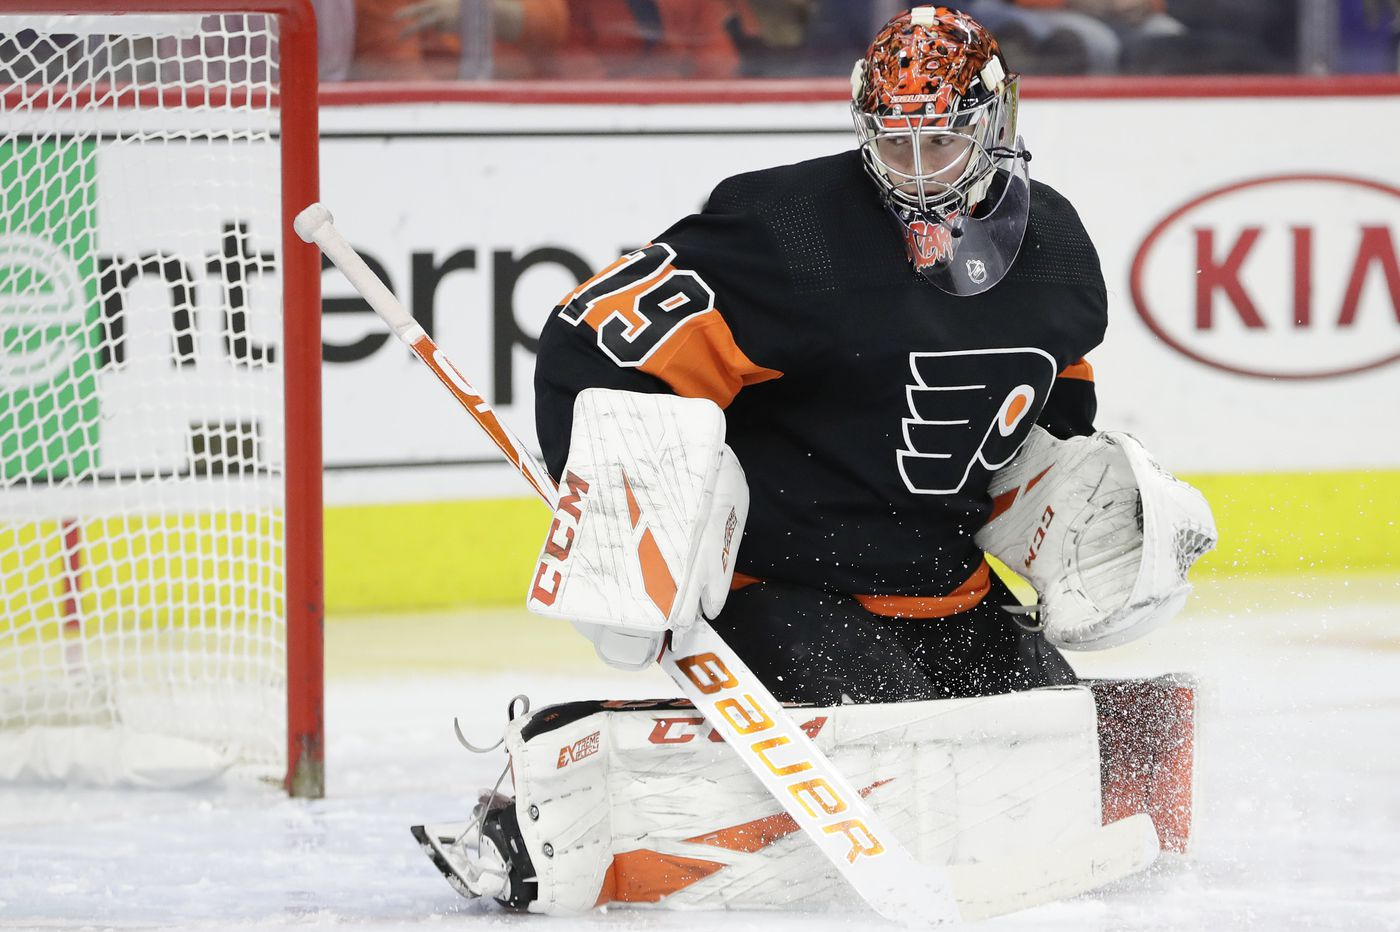 Flyers mailbag: Fans ask about Carter Hart, Gritty, preparing for NHL's tournament, and more | Sam Carchidi